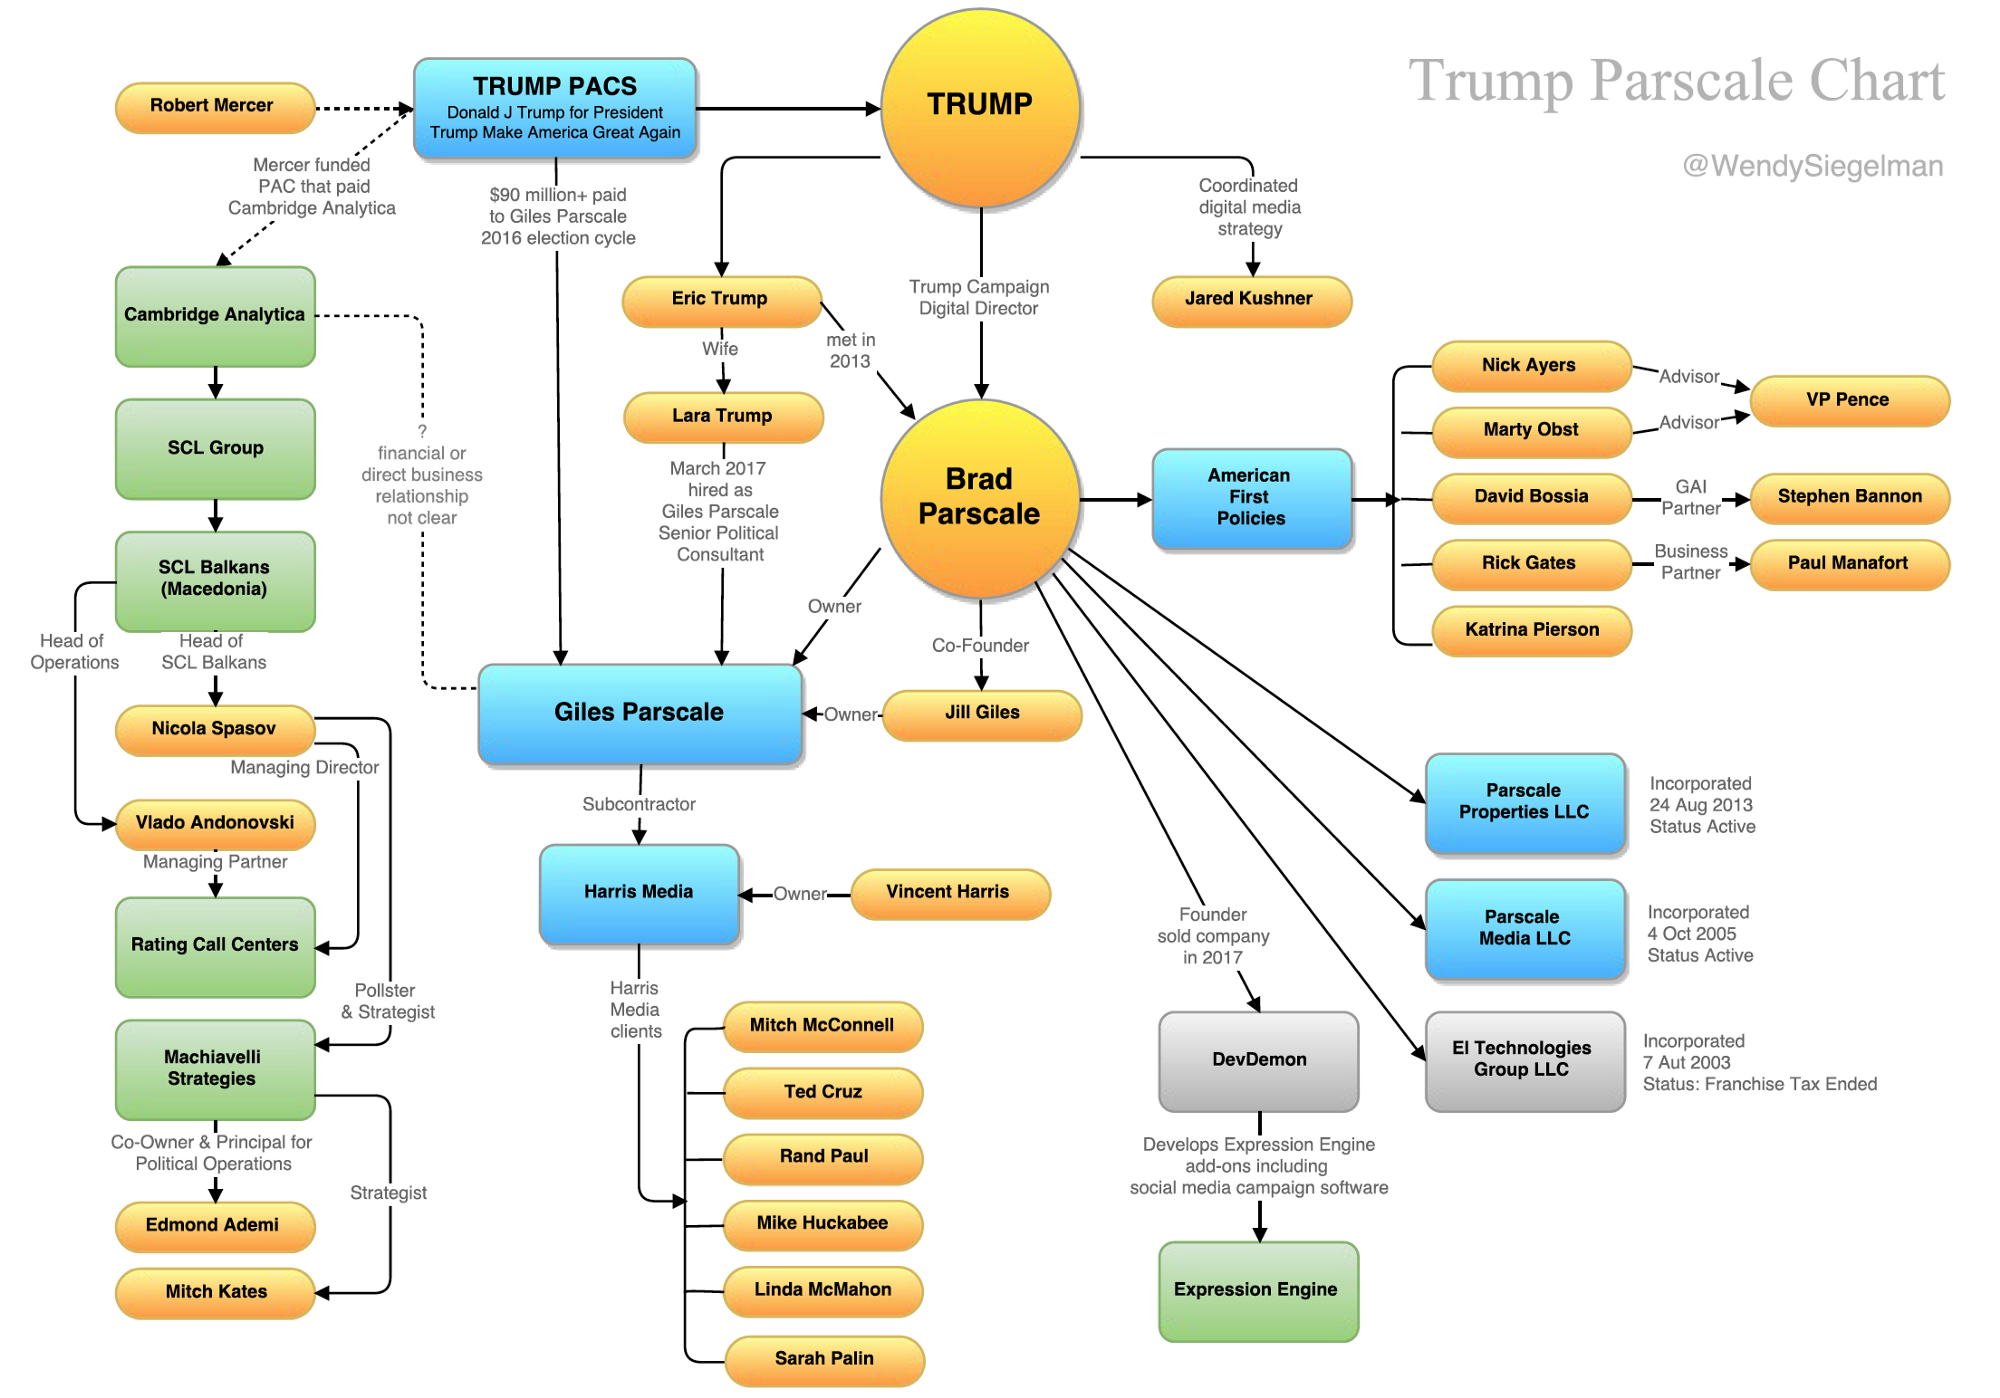 trump parscale chart – wendy siegelman – medium